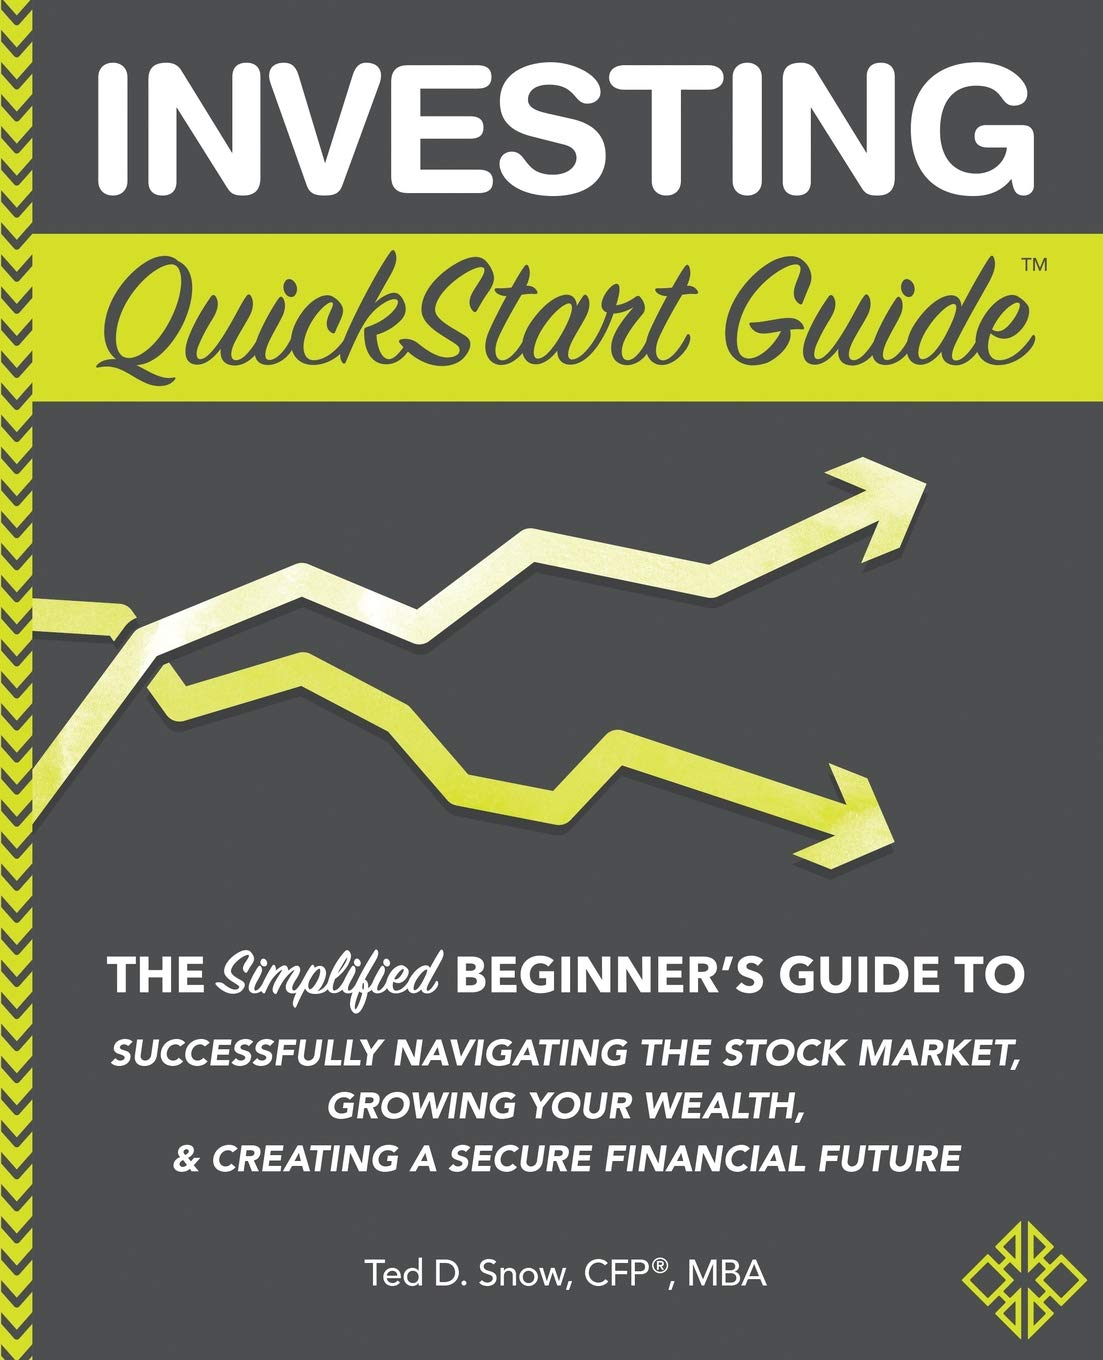 Investing QuickStart Guide Simplified Successfully product image